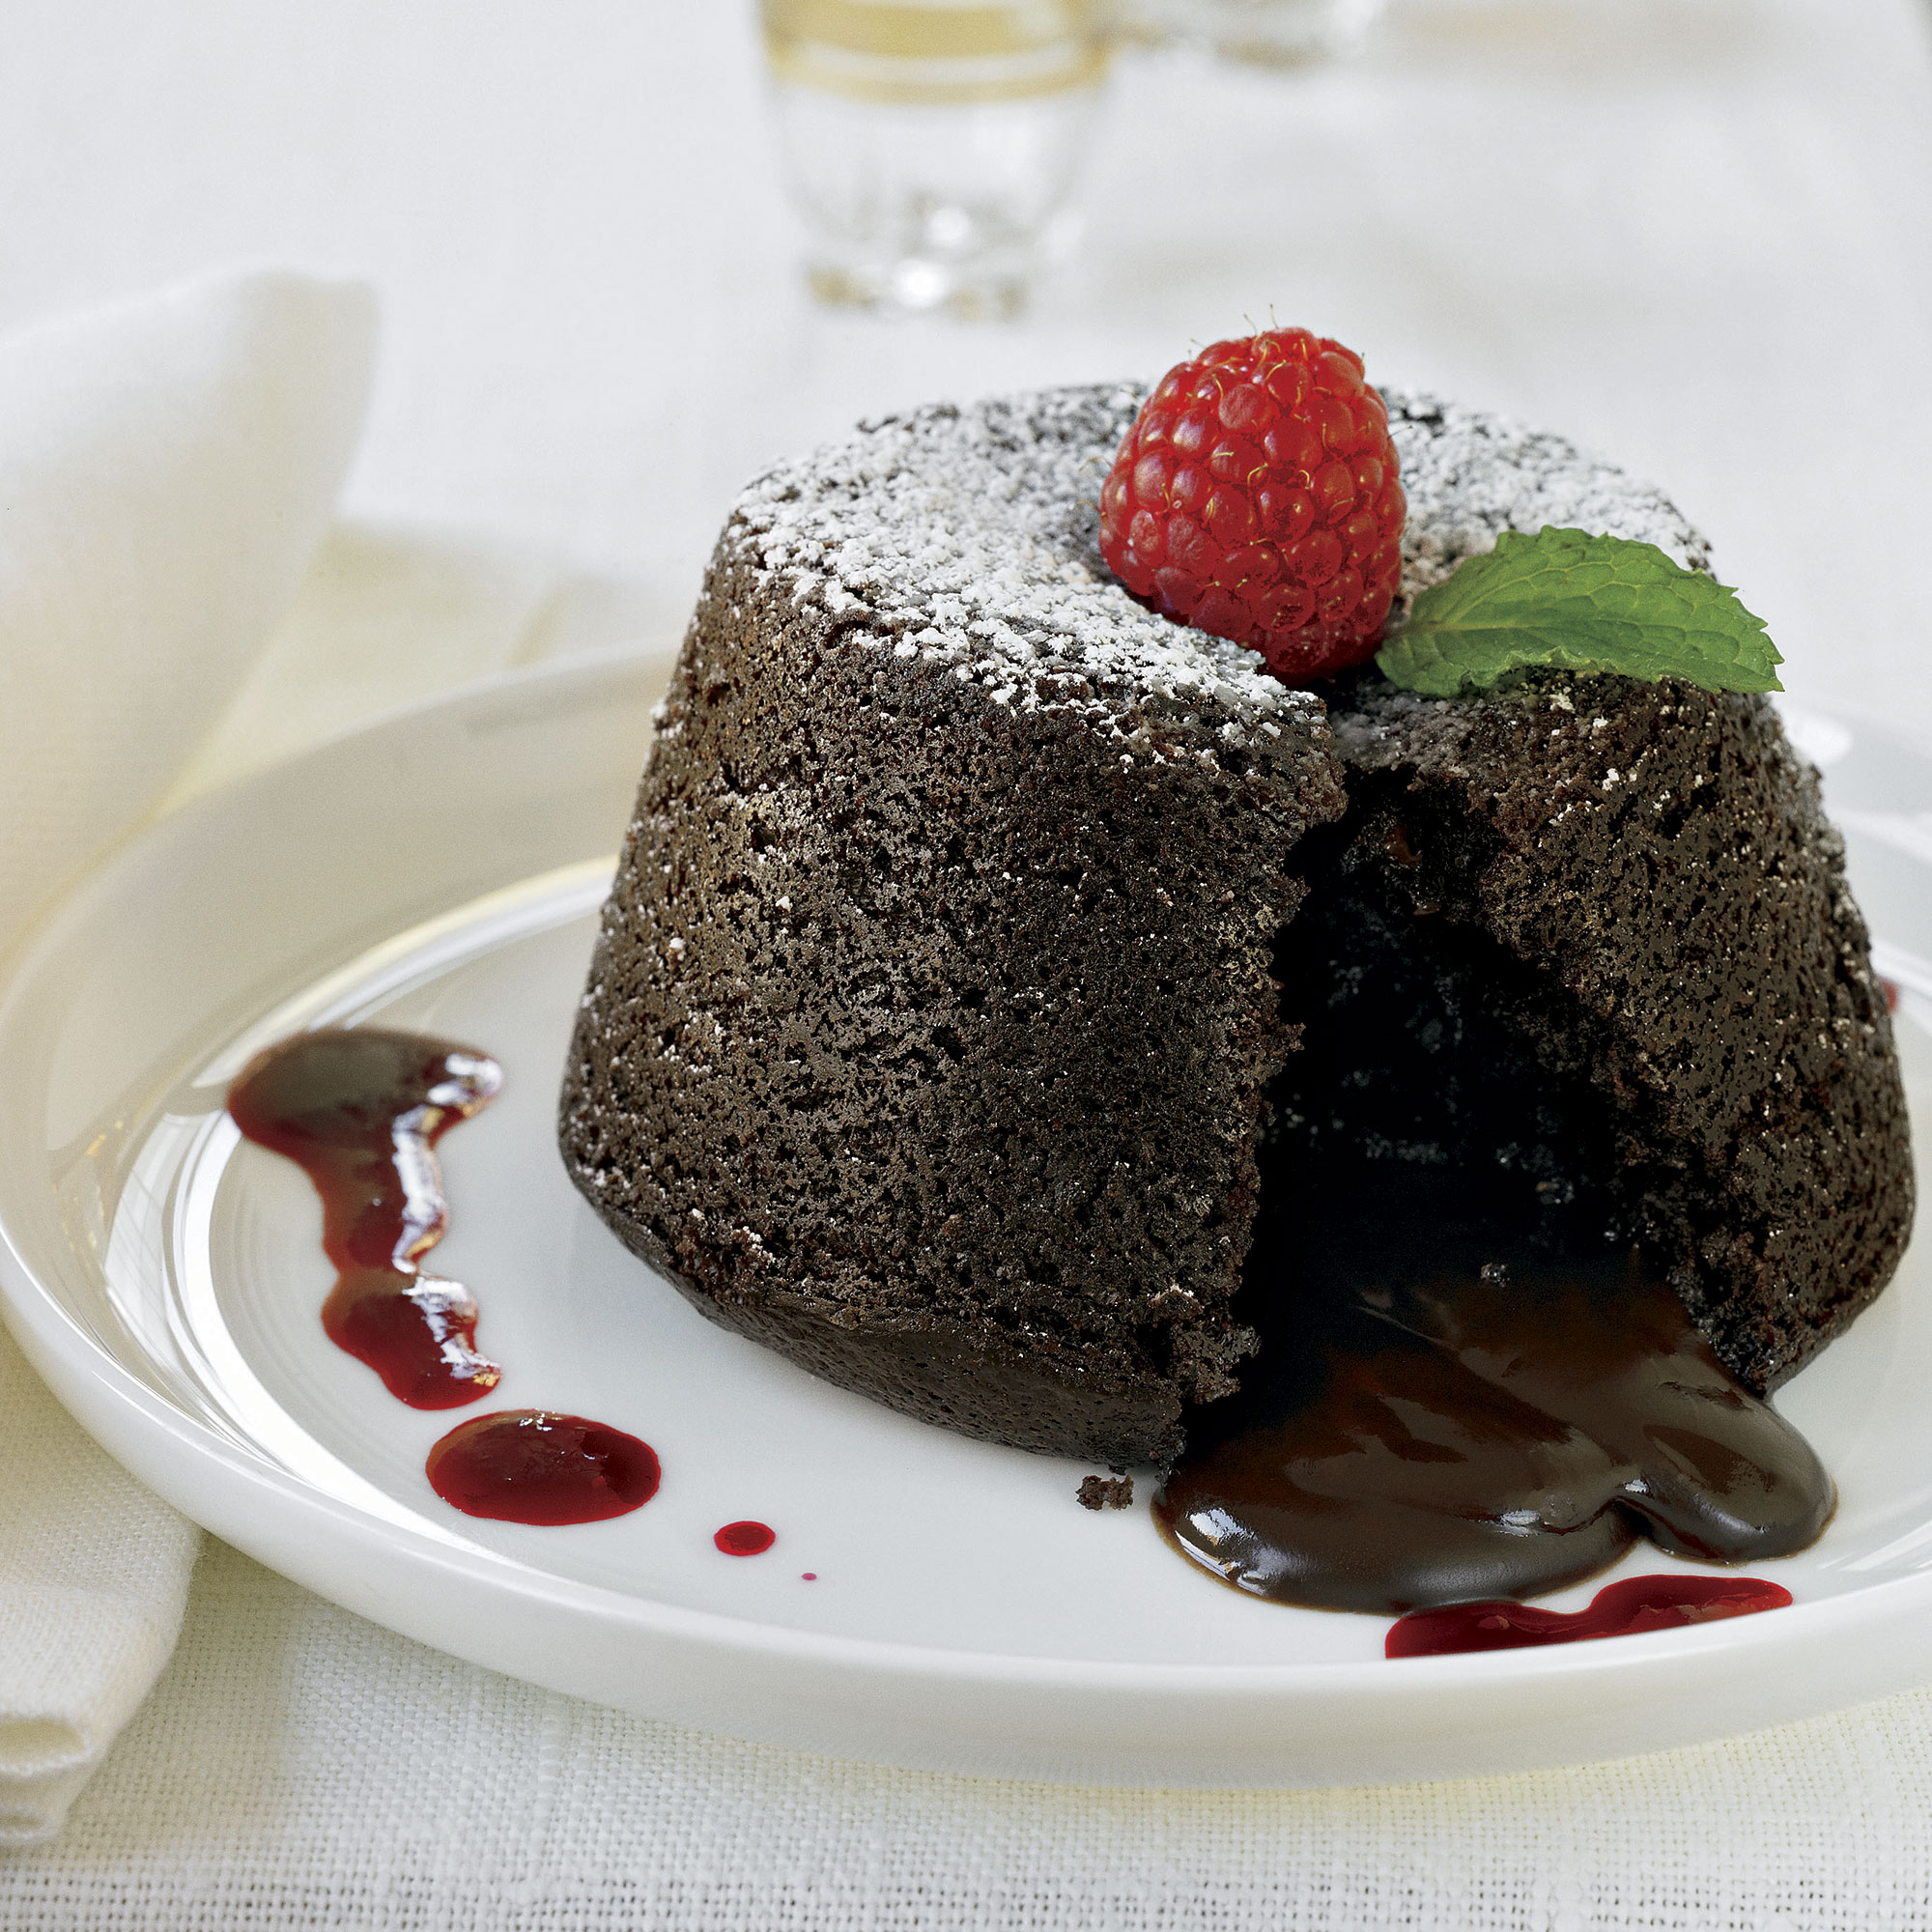 Recipe For Chocolate Cake With Pudding On The Bottom